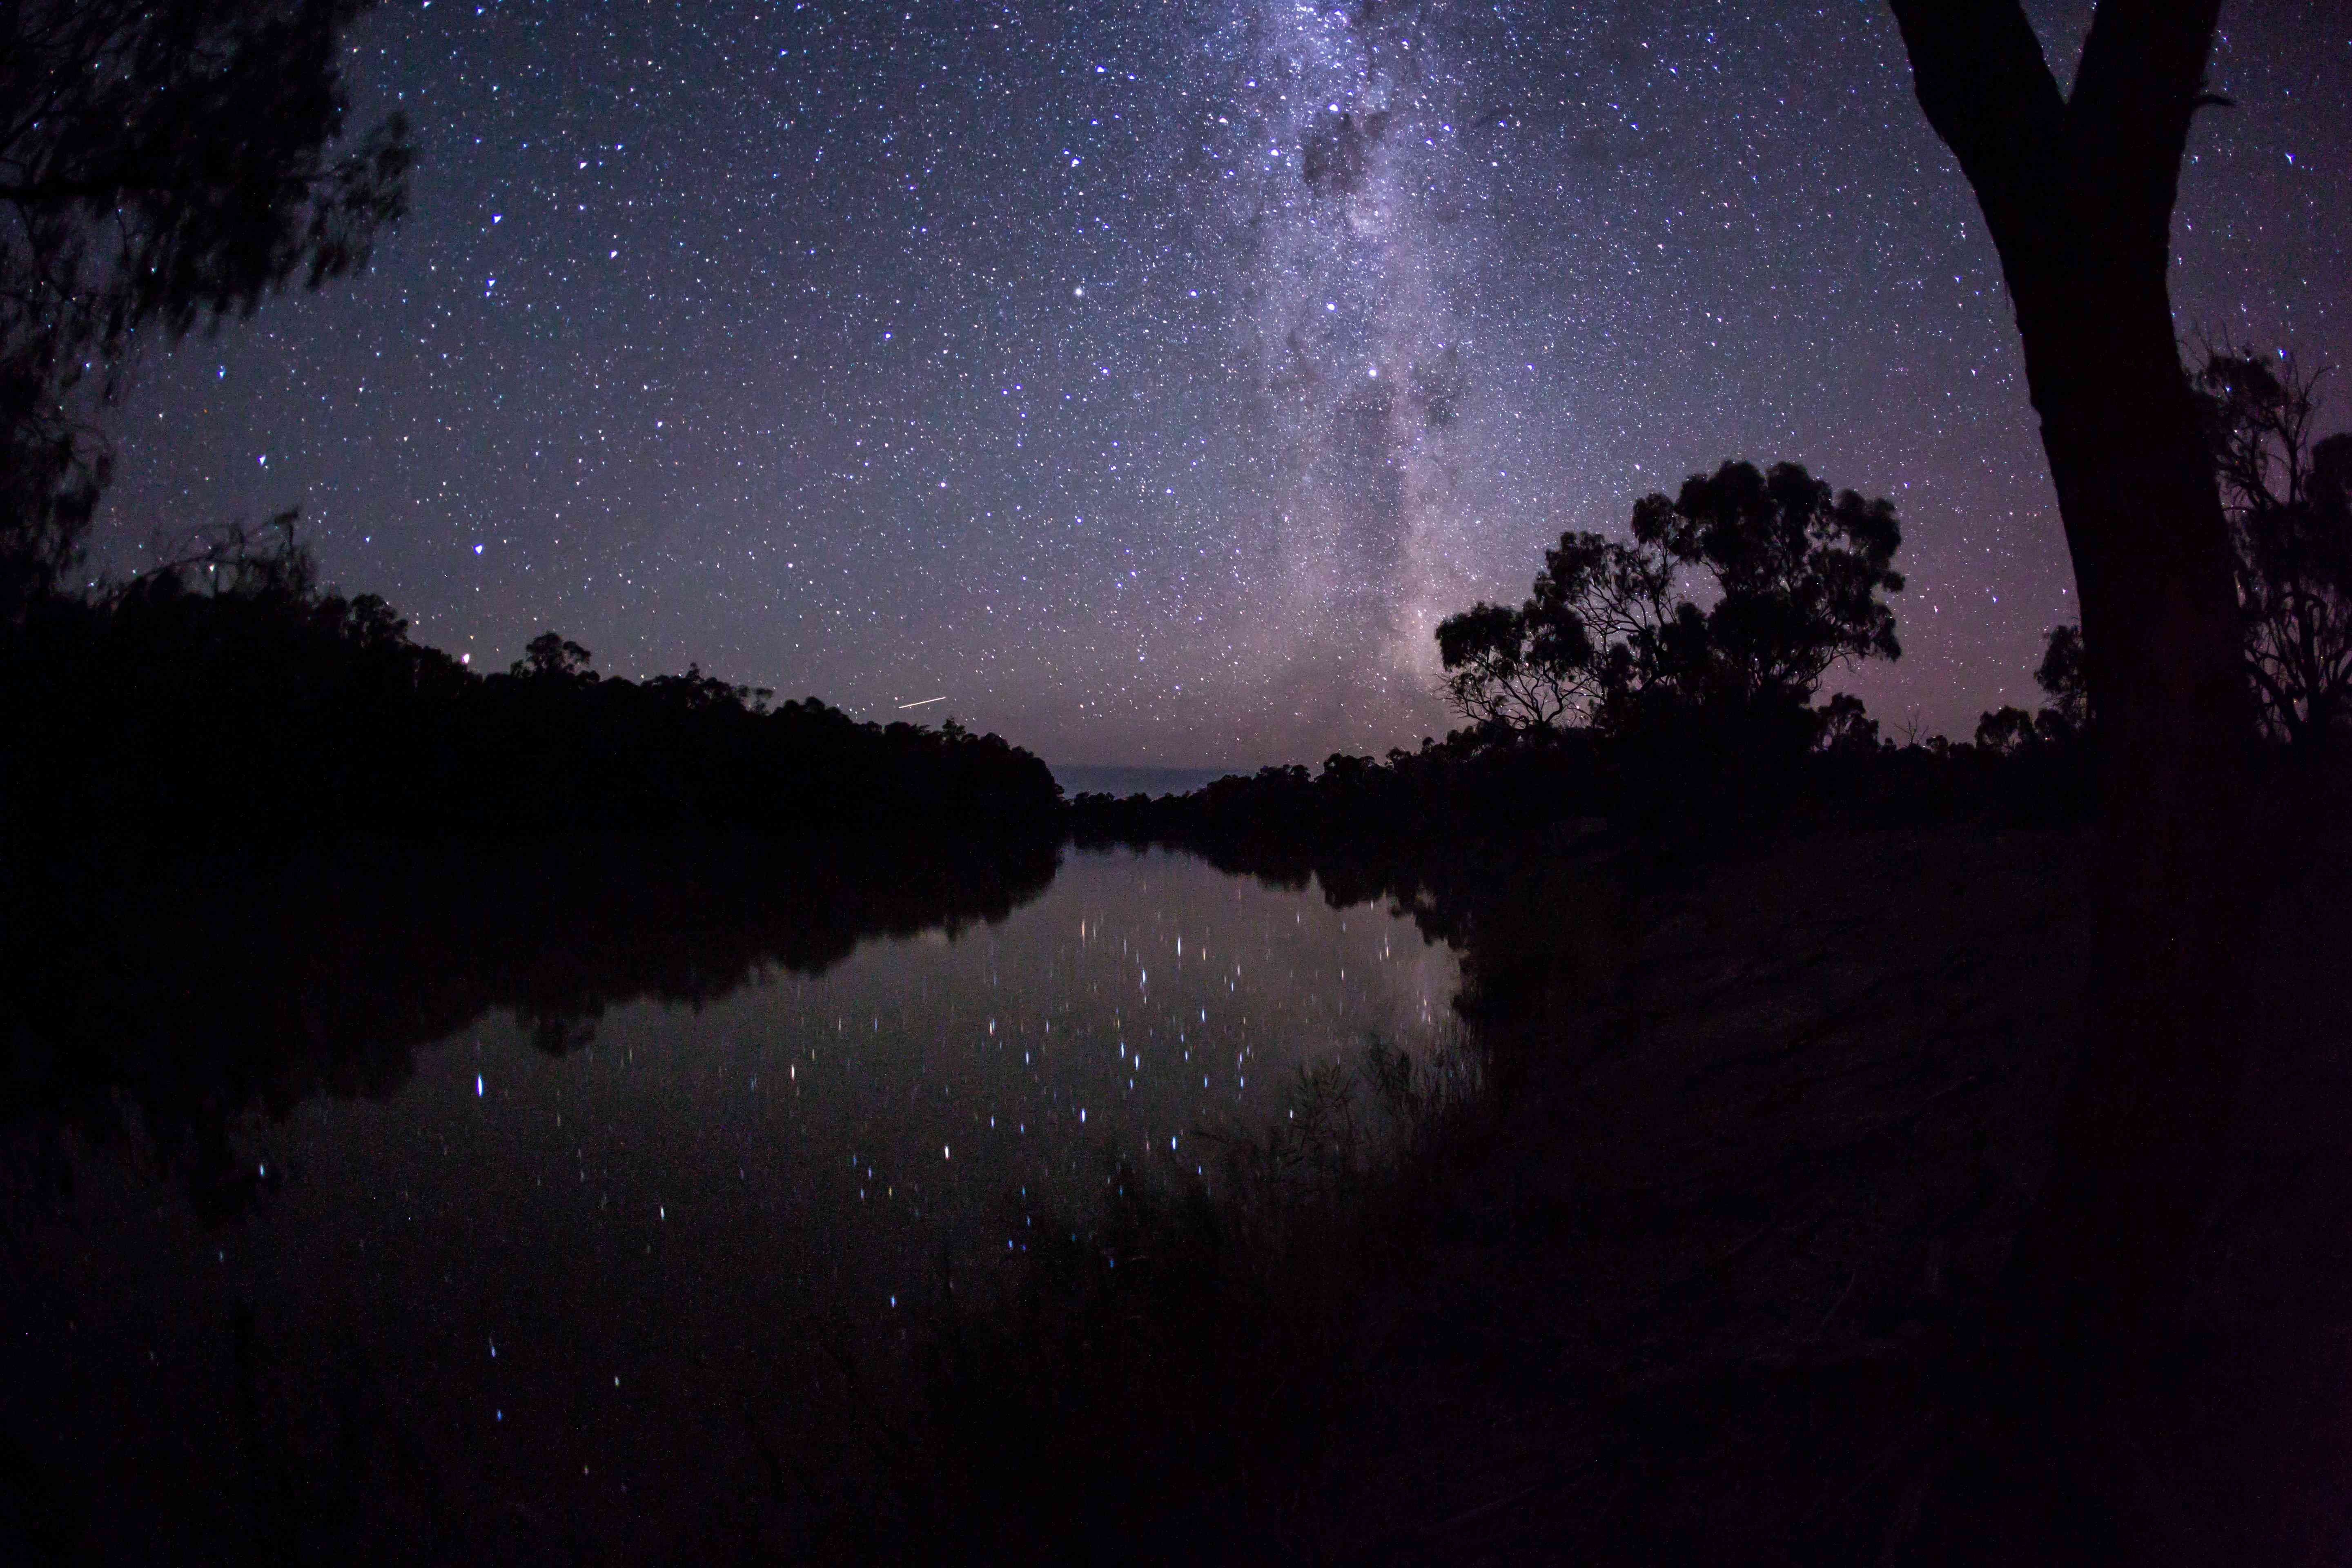 Bright stars reflecting in river surrounded by forest